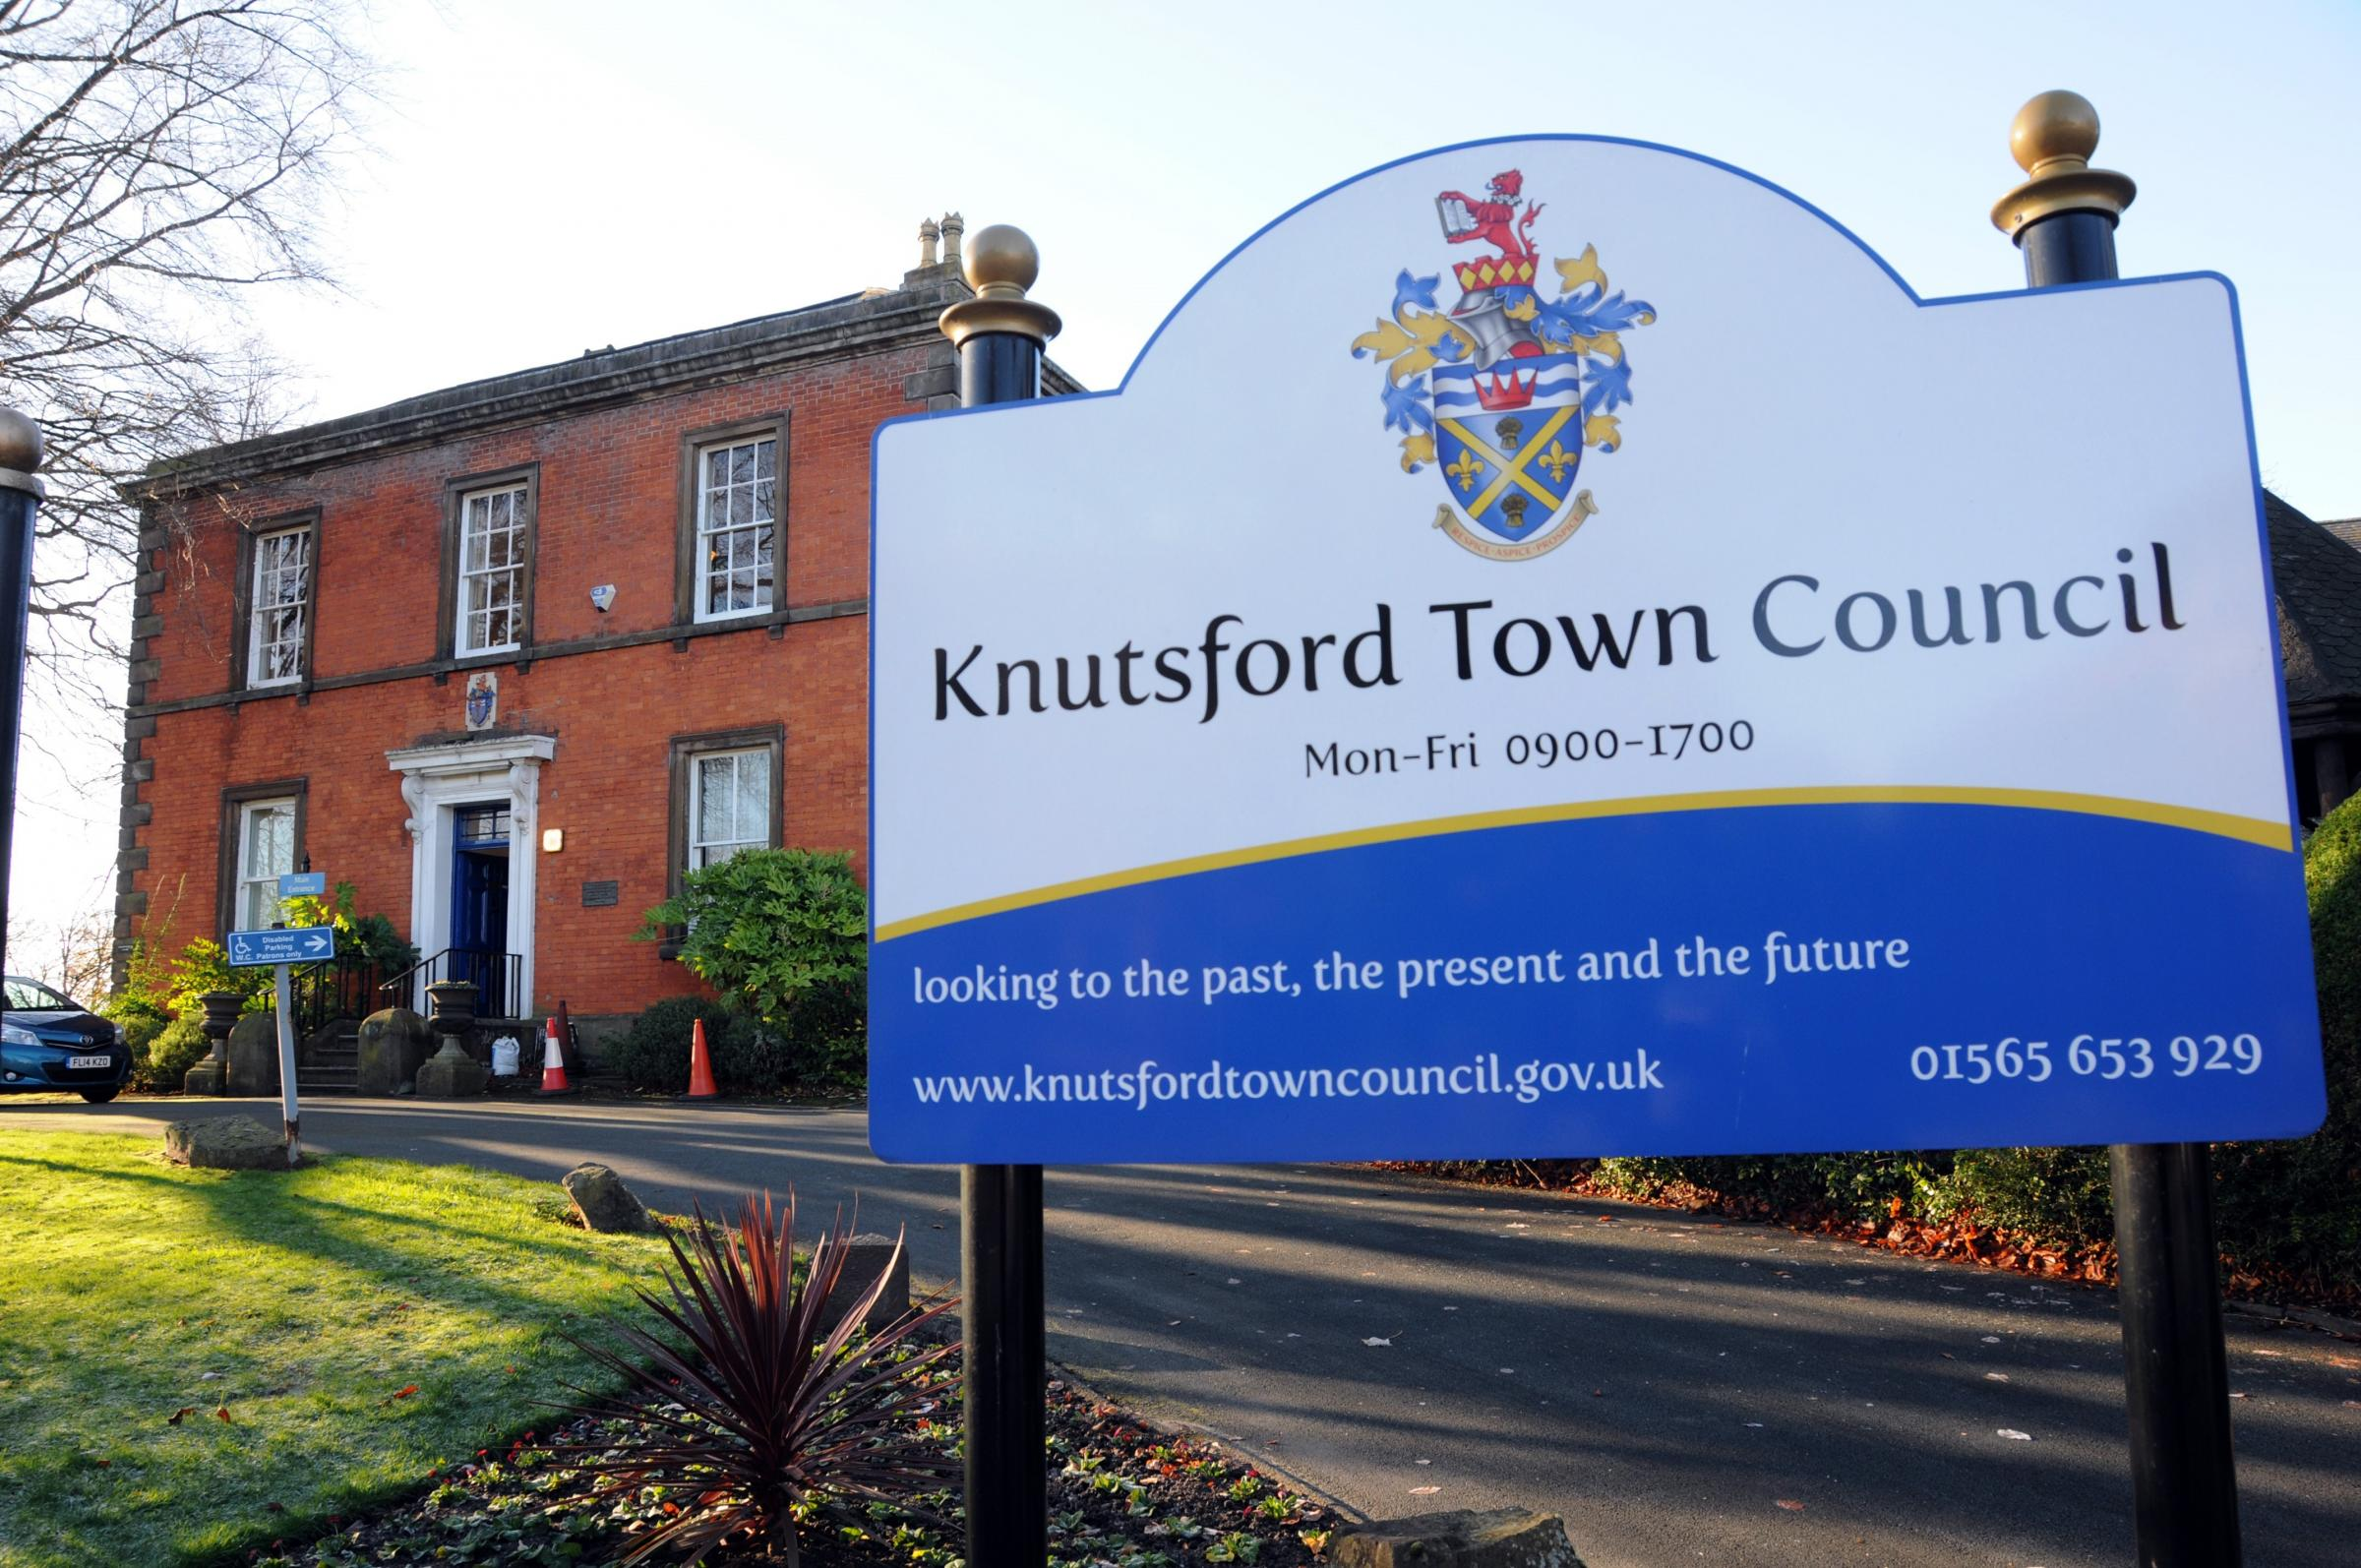 Knutsford Town council Building  301117.